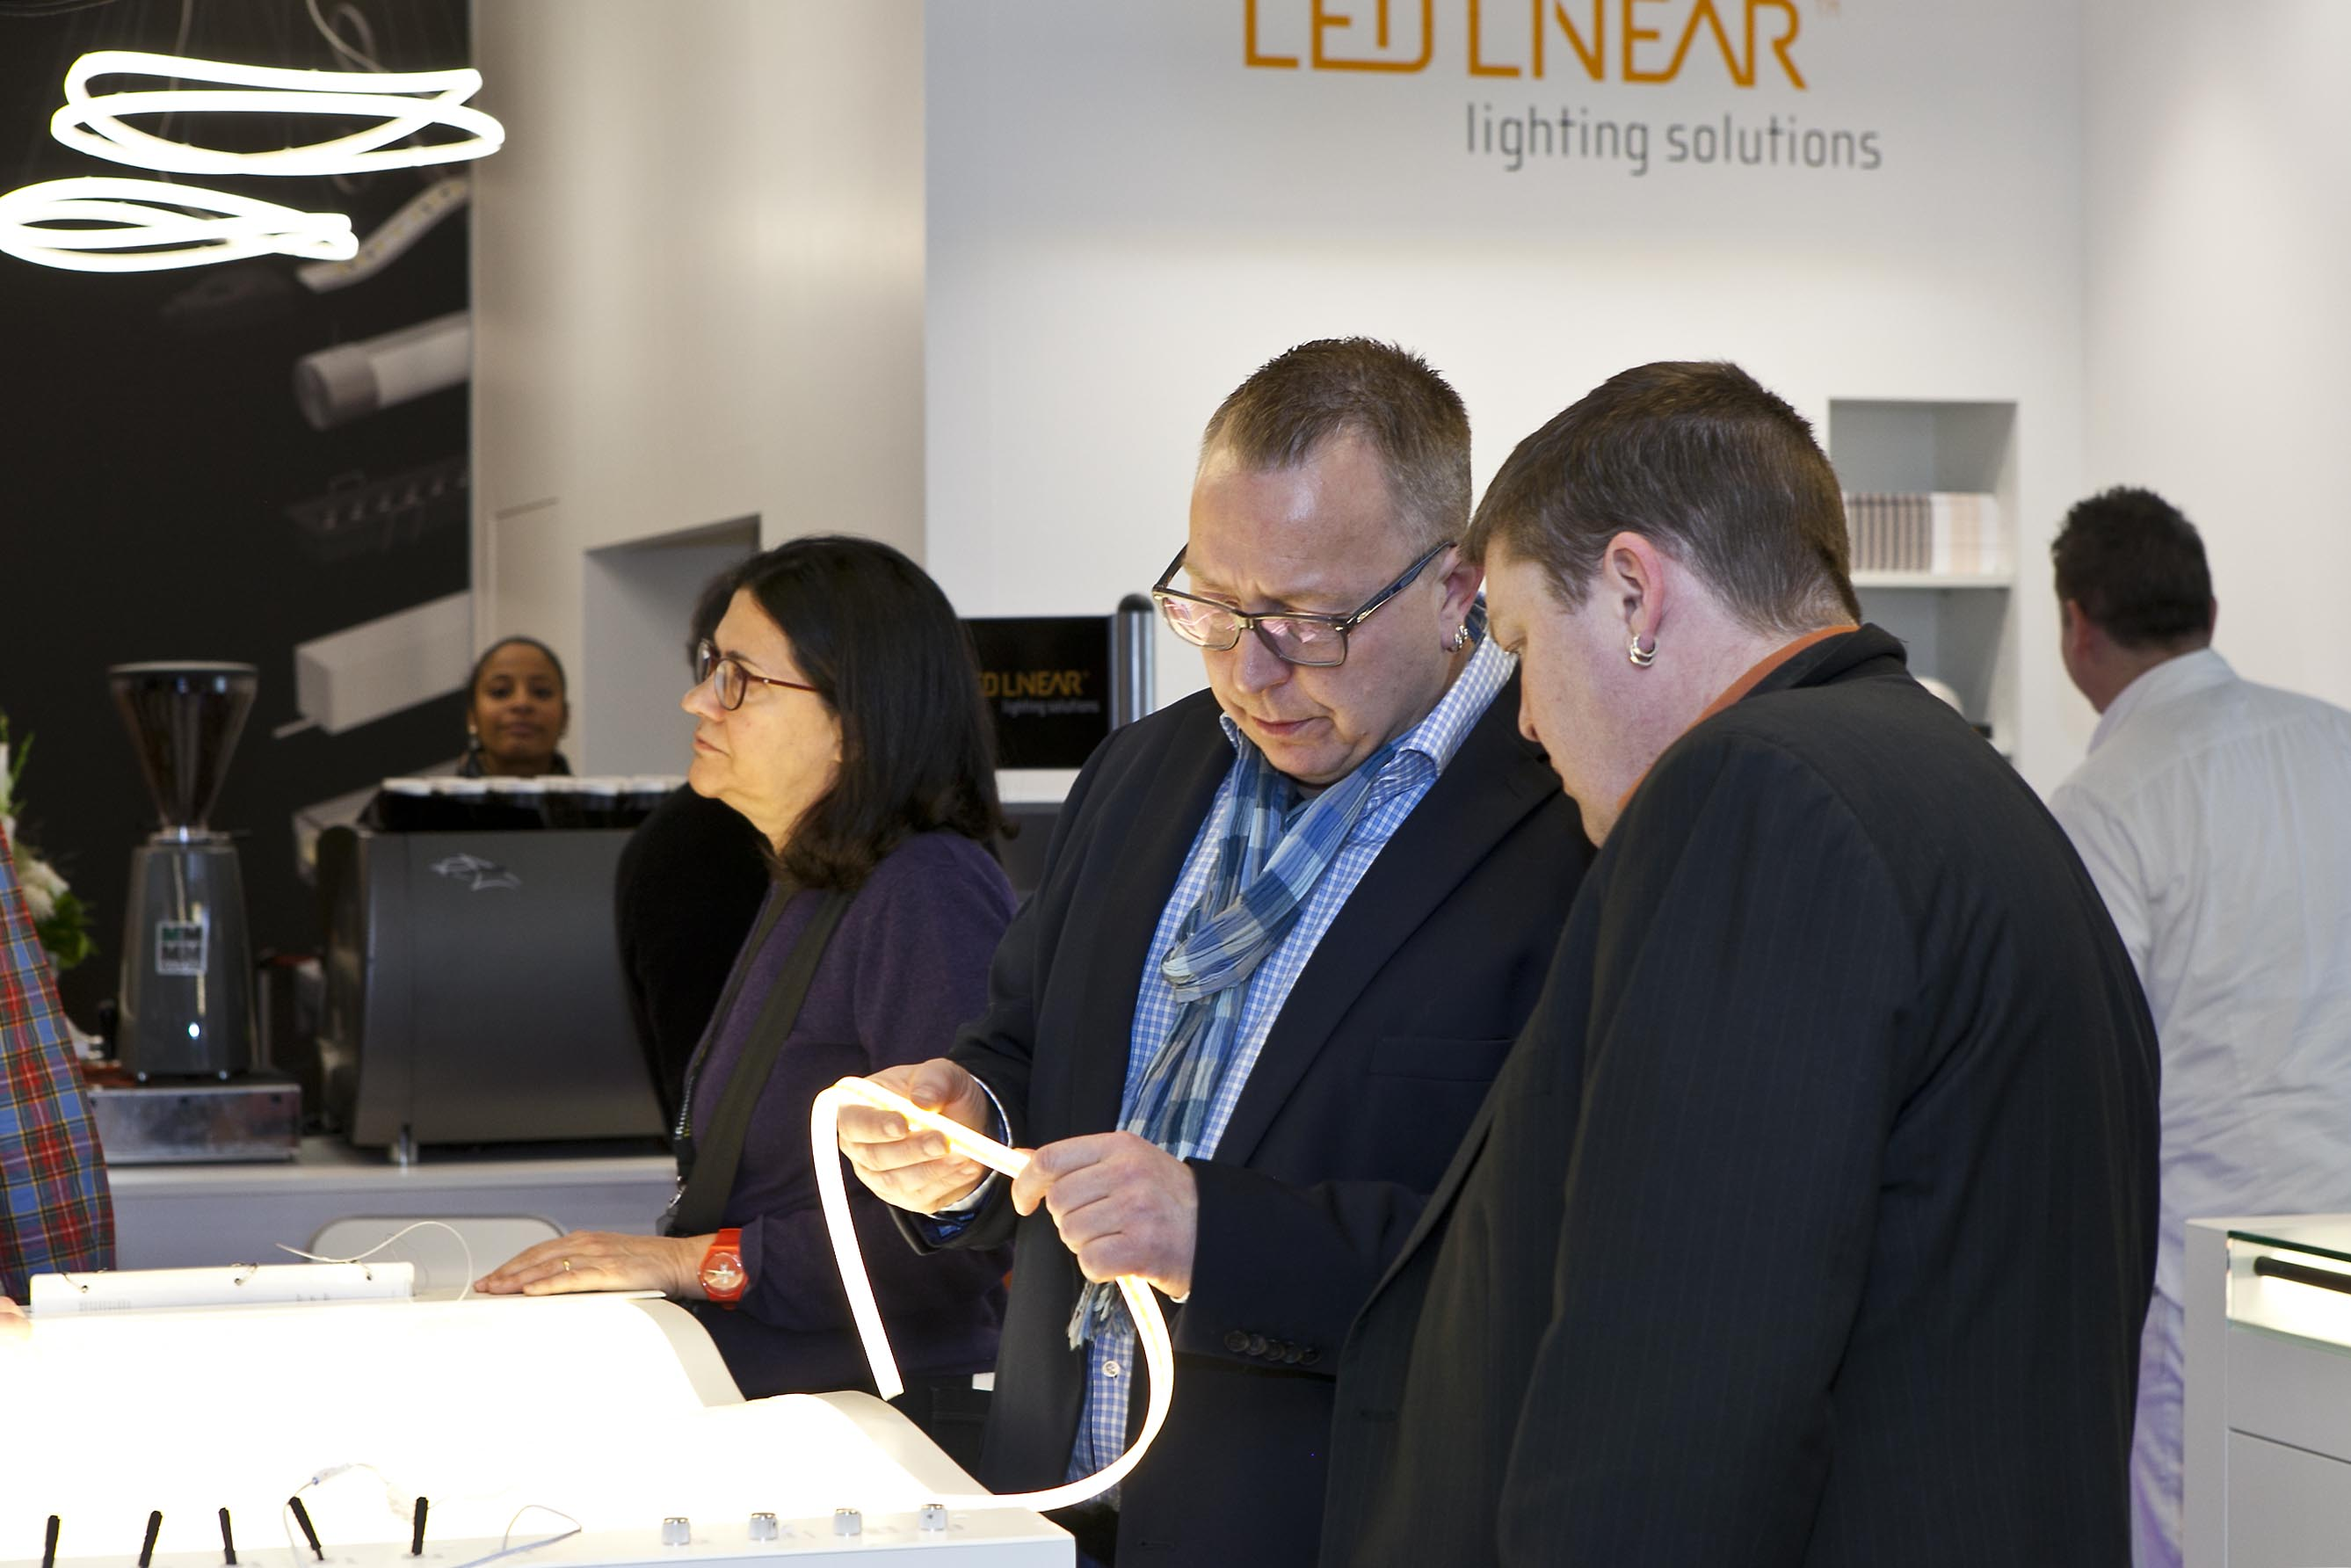 «Integration» Tour at LED Linear